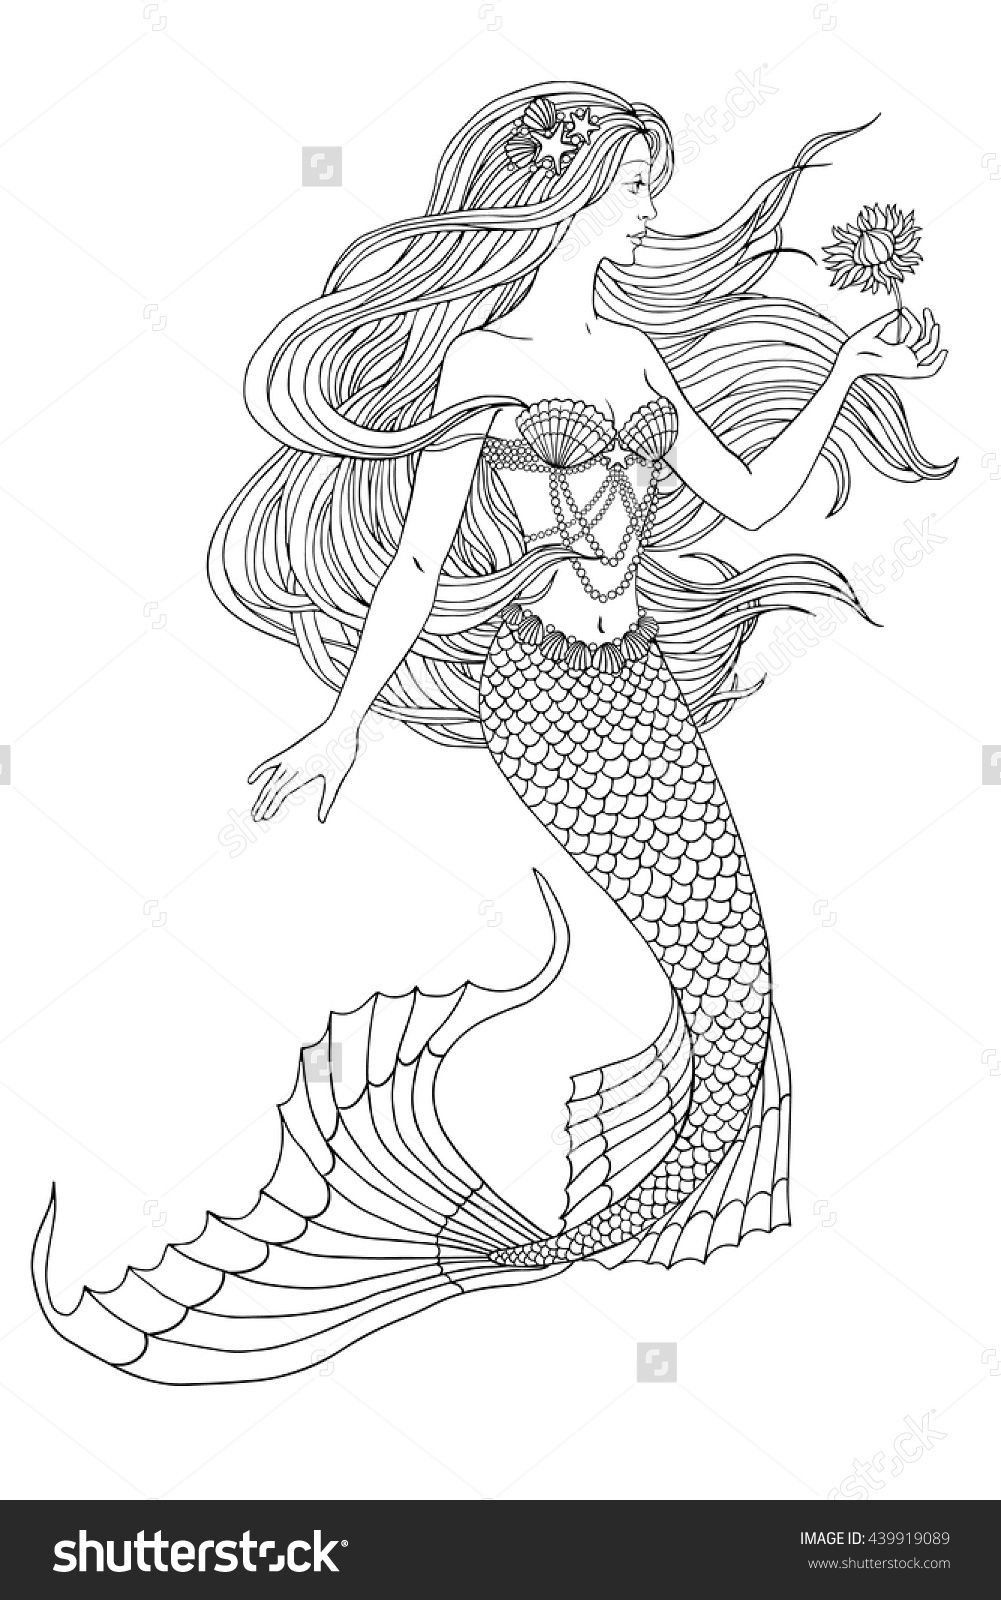 beautiful mermaid mermaid coloring pages 30 stunning mermaid coloring pages mermaid mermaid beautiful coloring pages